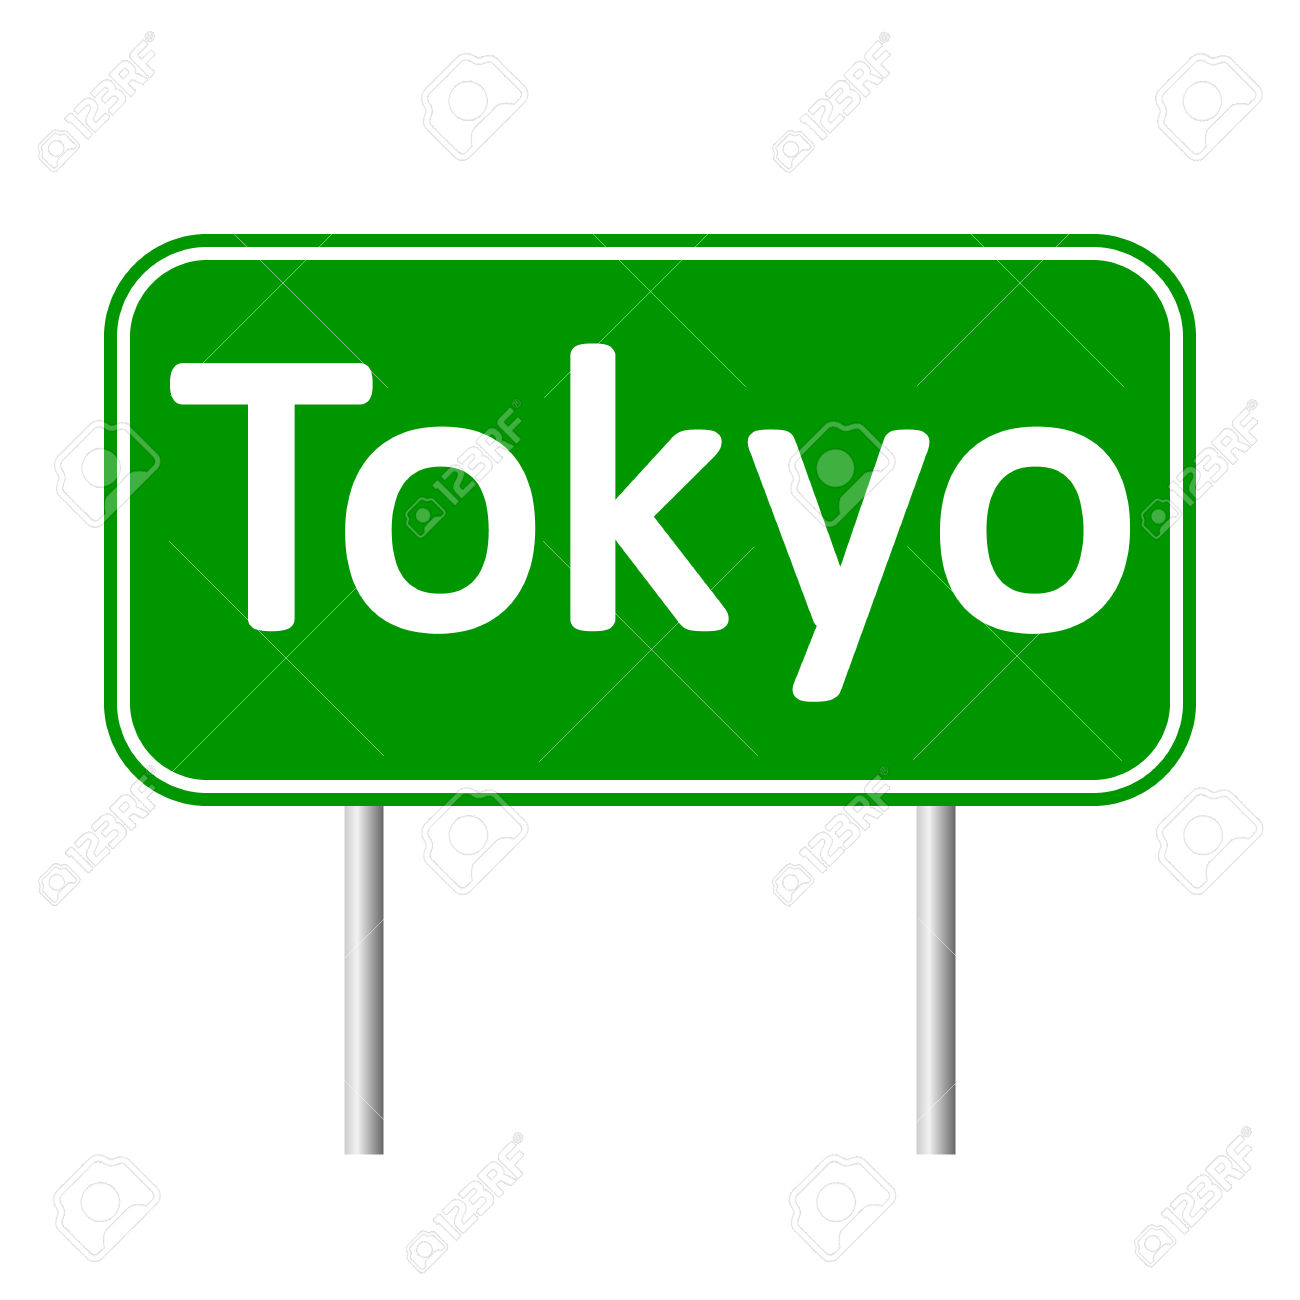 Tokyo Road Sign Isolated On White Background. Royalty Free.